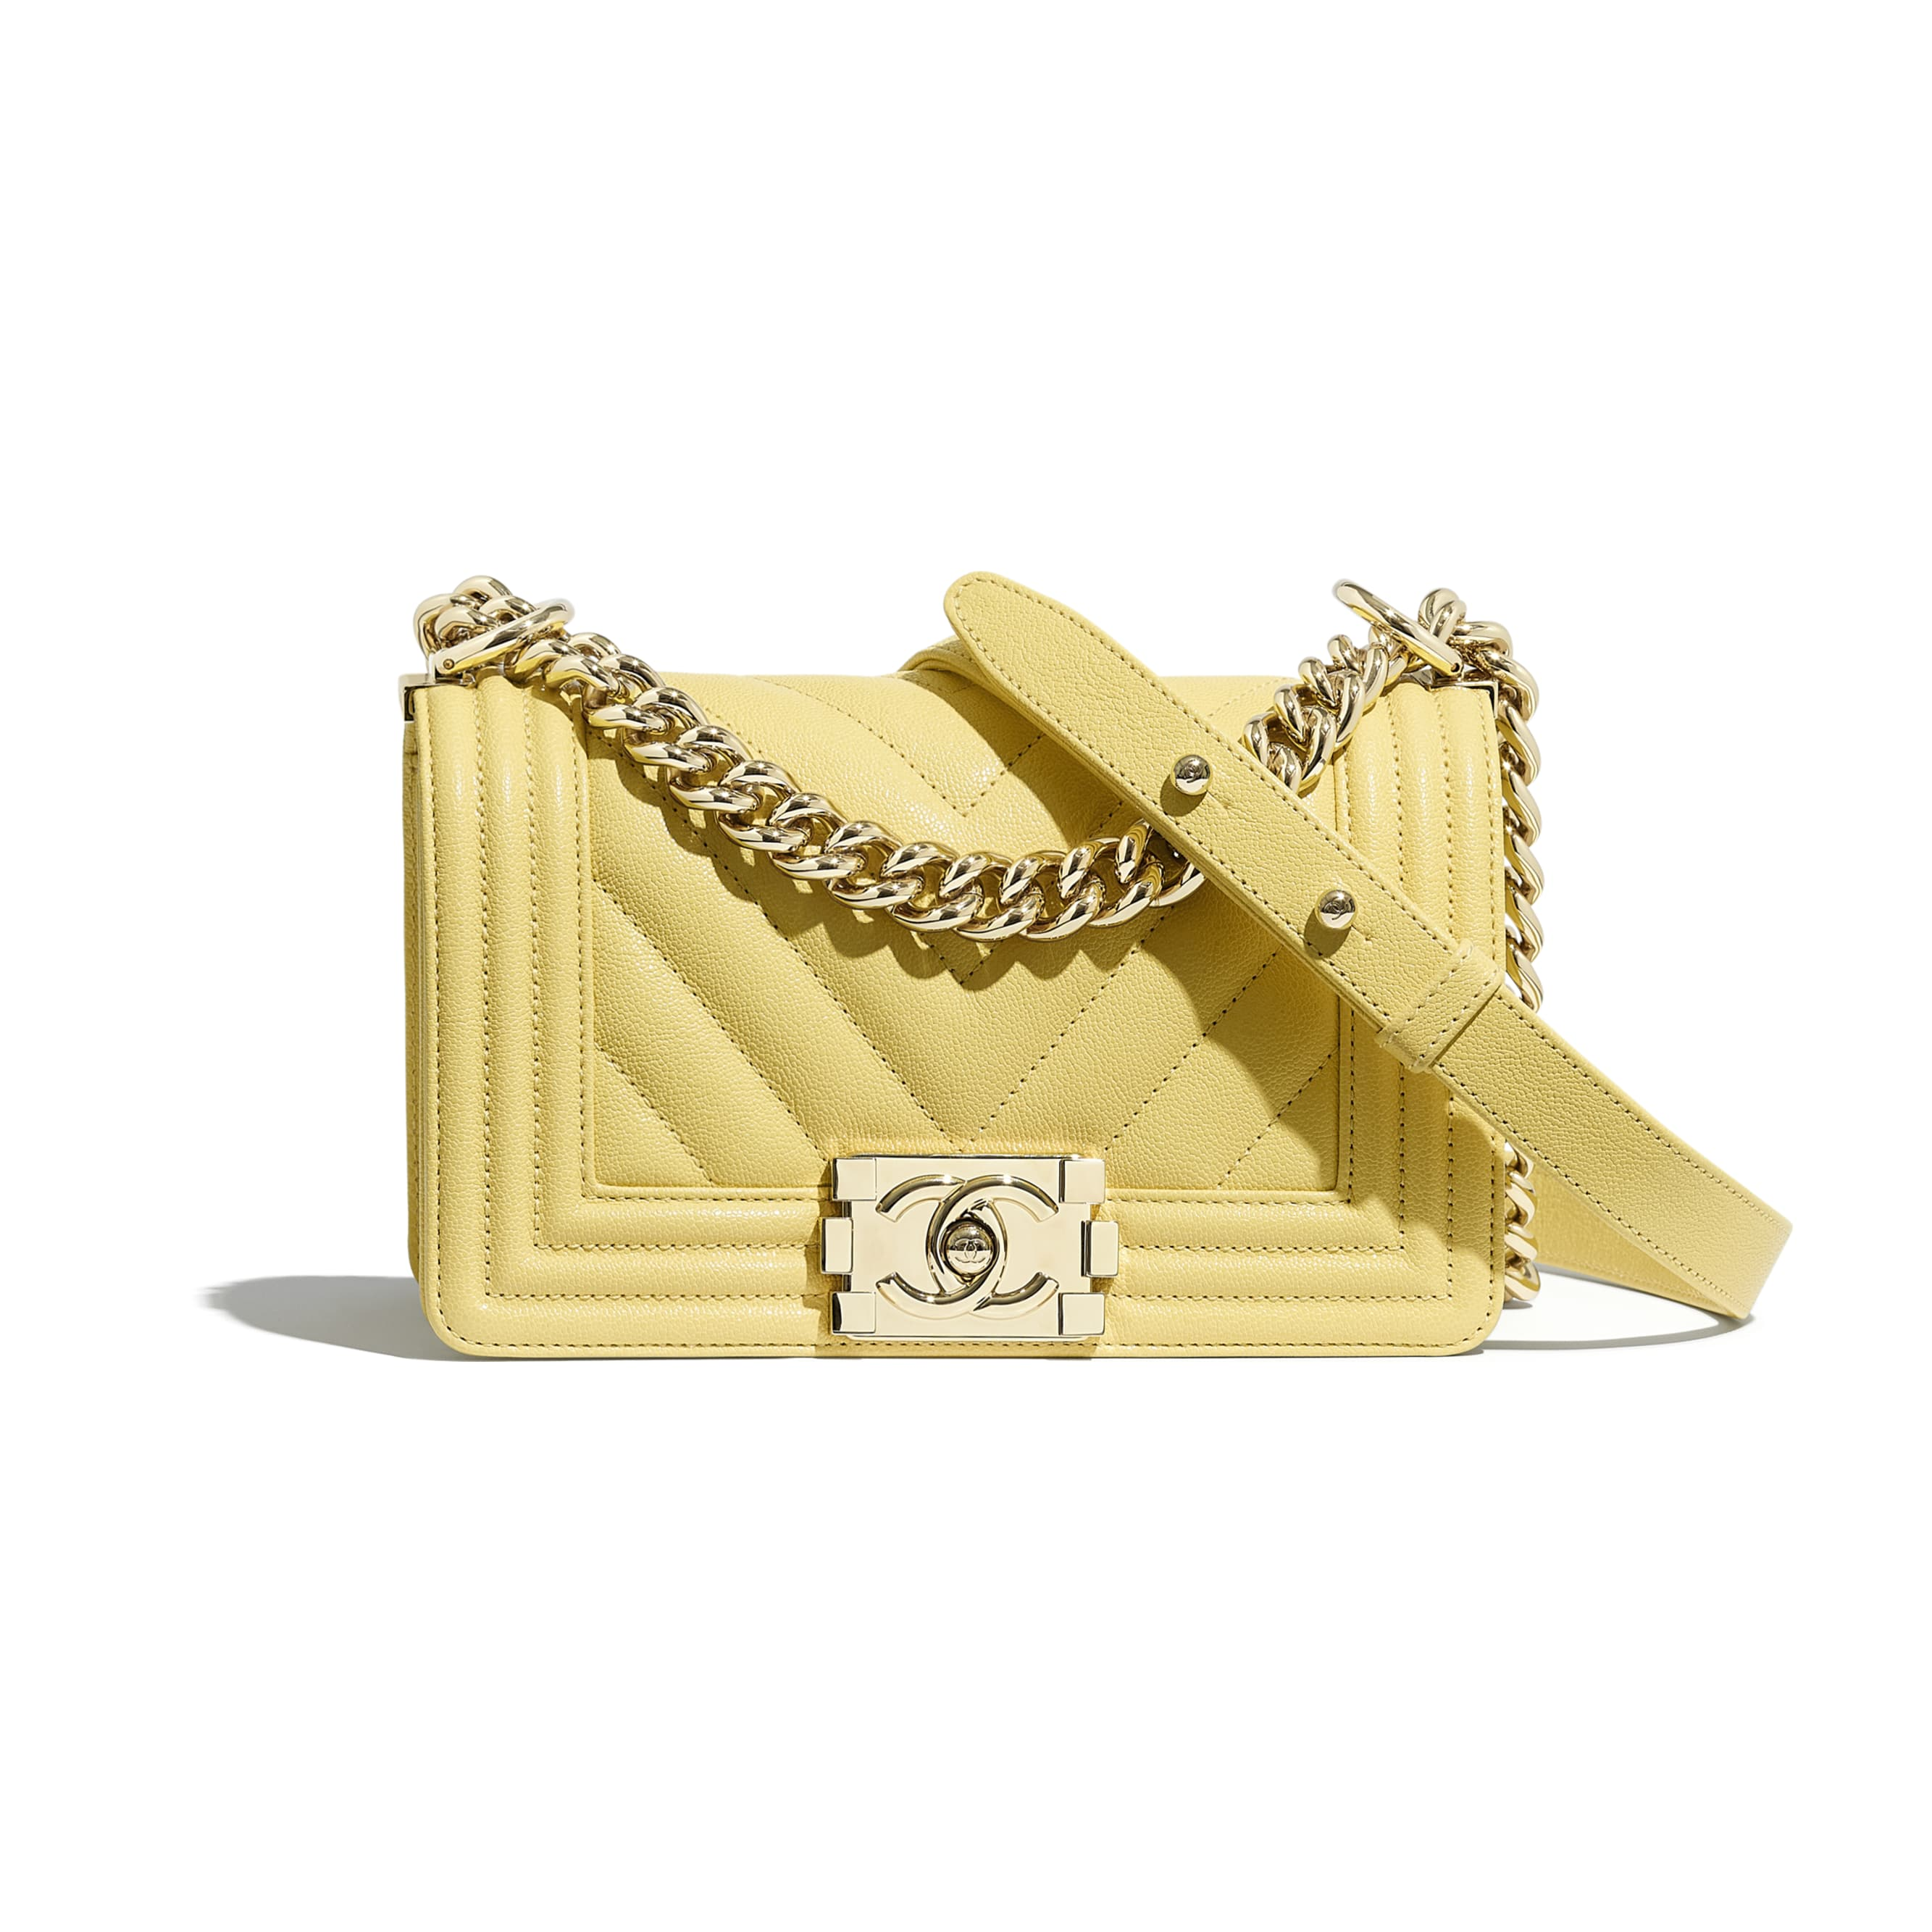 Small BOY CHANEL Handbag - Yellow - Grained Calfskin & Gold-Tone Metal - CHANEL - Default view - see standard sized version